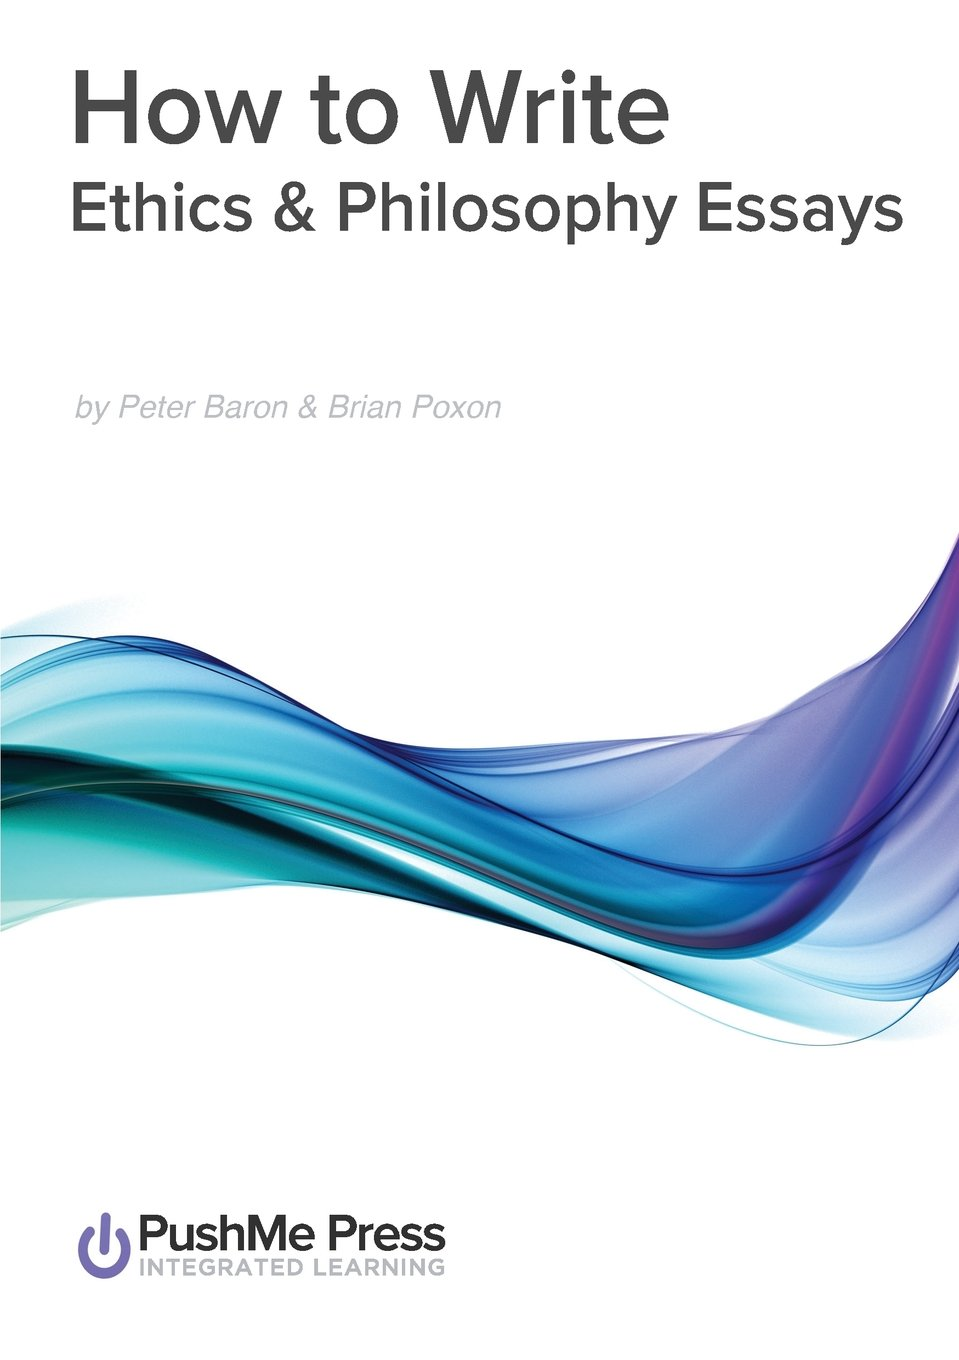 how to write ethics philosophy essays religious studies how to write ethics philosophy essays religious studies co uk peter baron brian poxon peter baron brian poxon 9781909618121 books